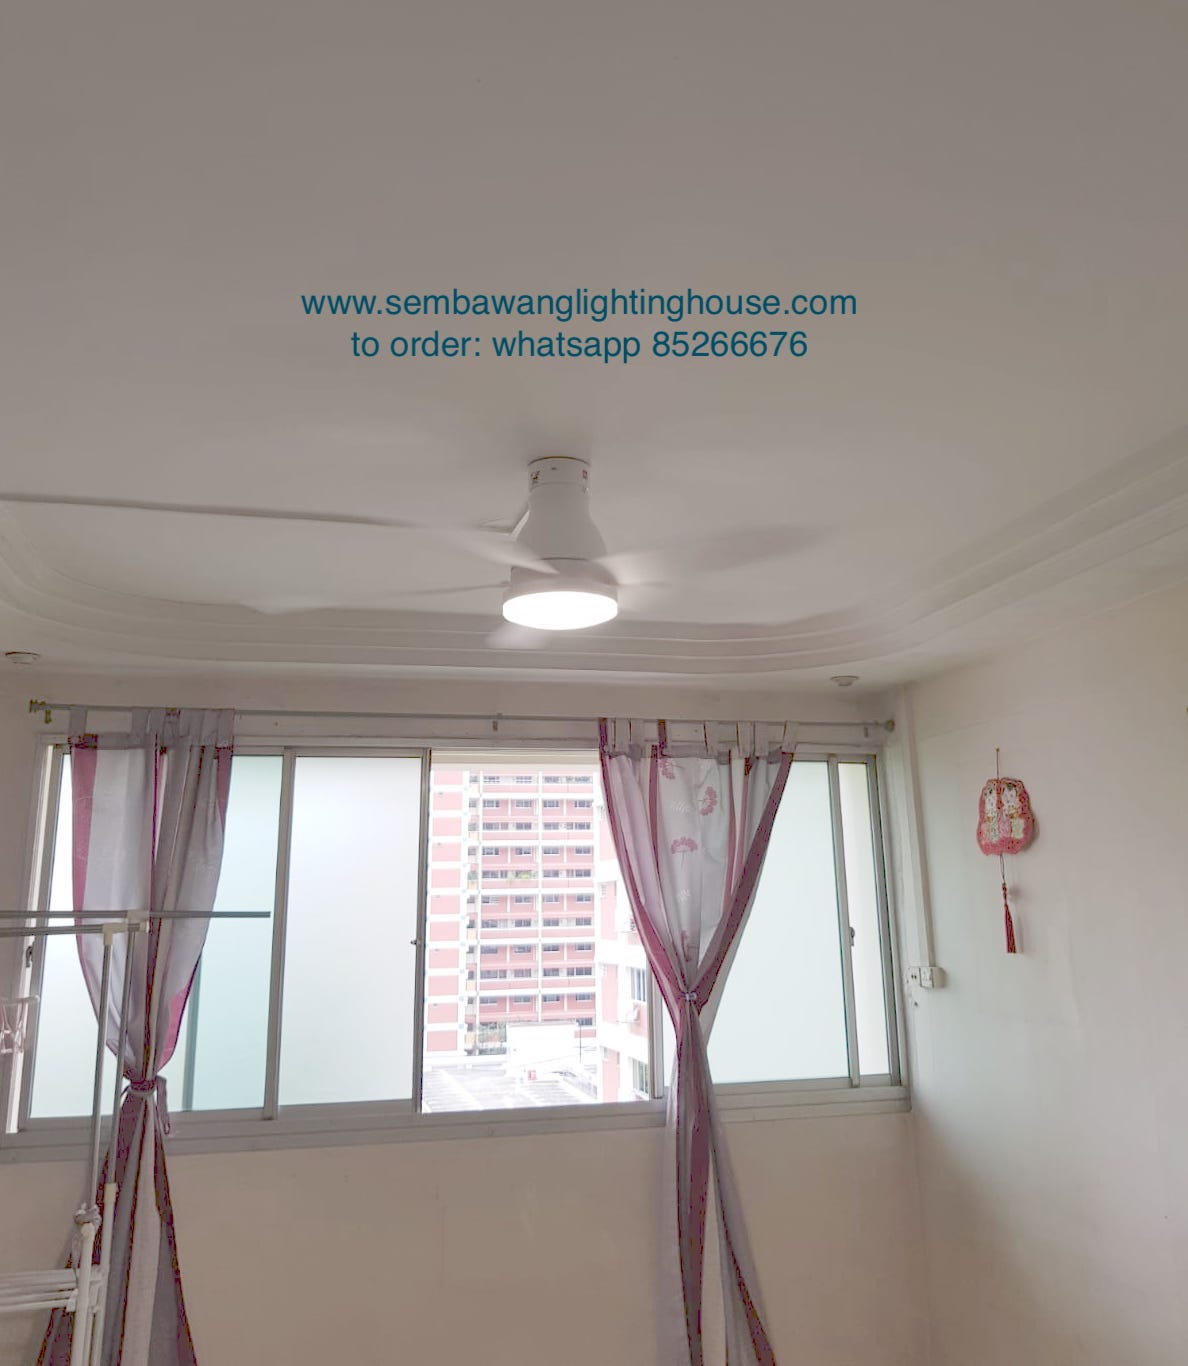 KDK U60FW White Ceiling Fan Sample in HDB Living Room